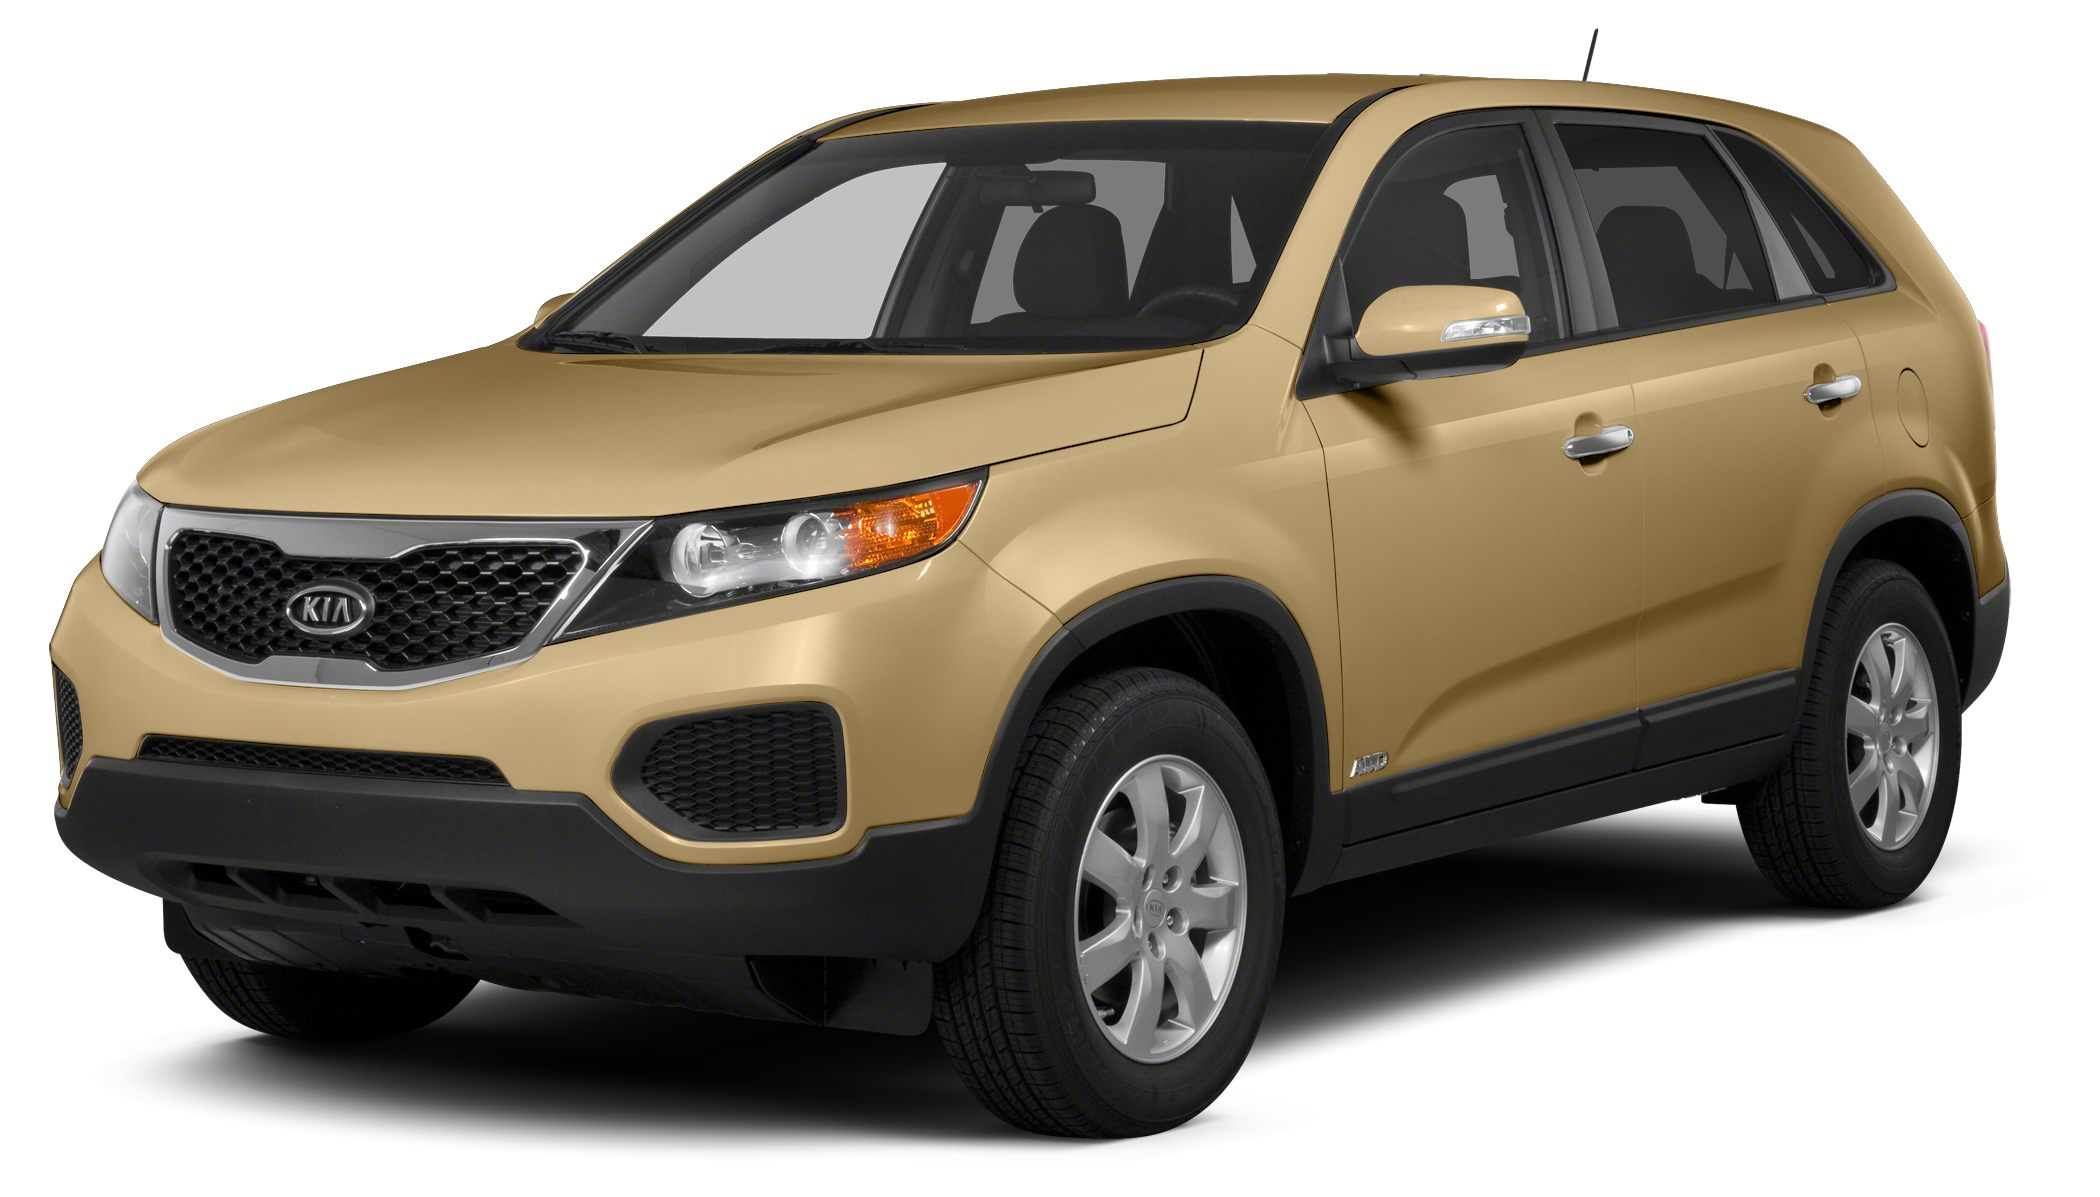 2012 Kia Sorento LX For Internet Pricing and InformationPlease call Teresa Brown  866-387-3798It